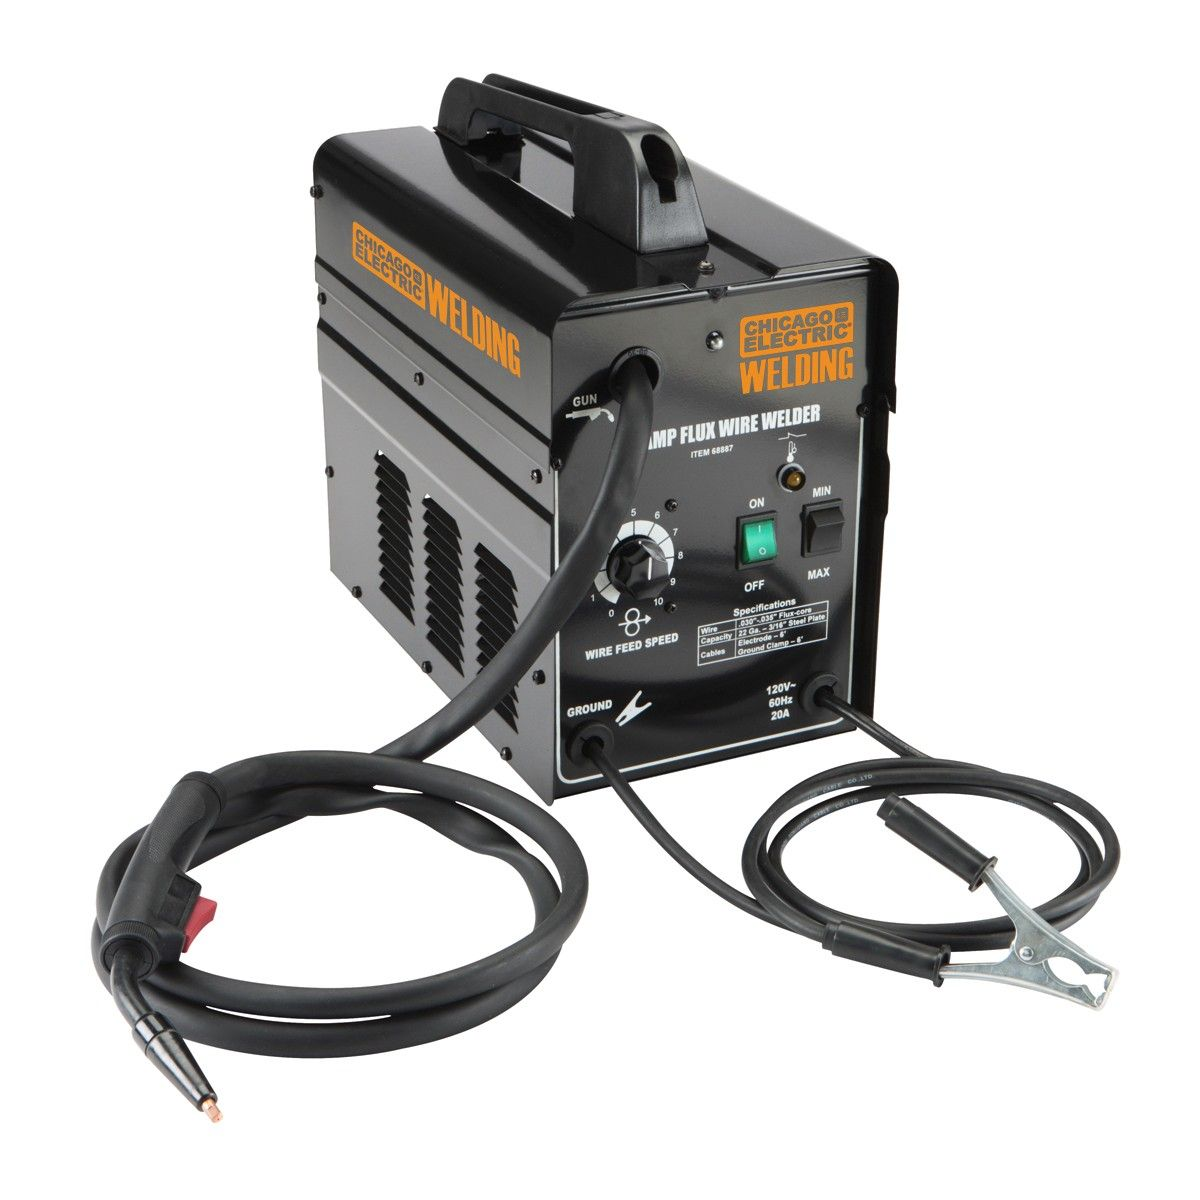 hight resolution of  89 99 chicago electric welding 68887 90 amp flux wire welder black 89 99 chicago electric